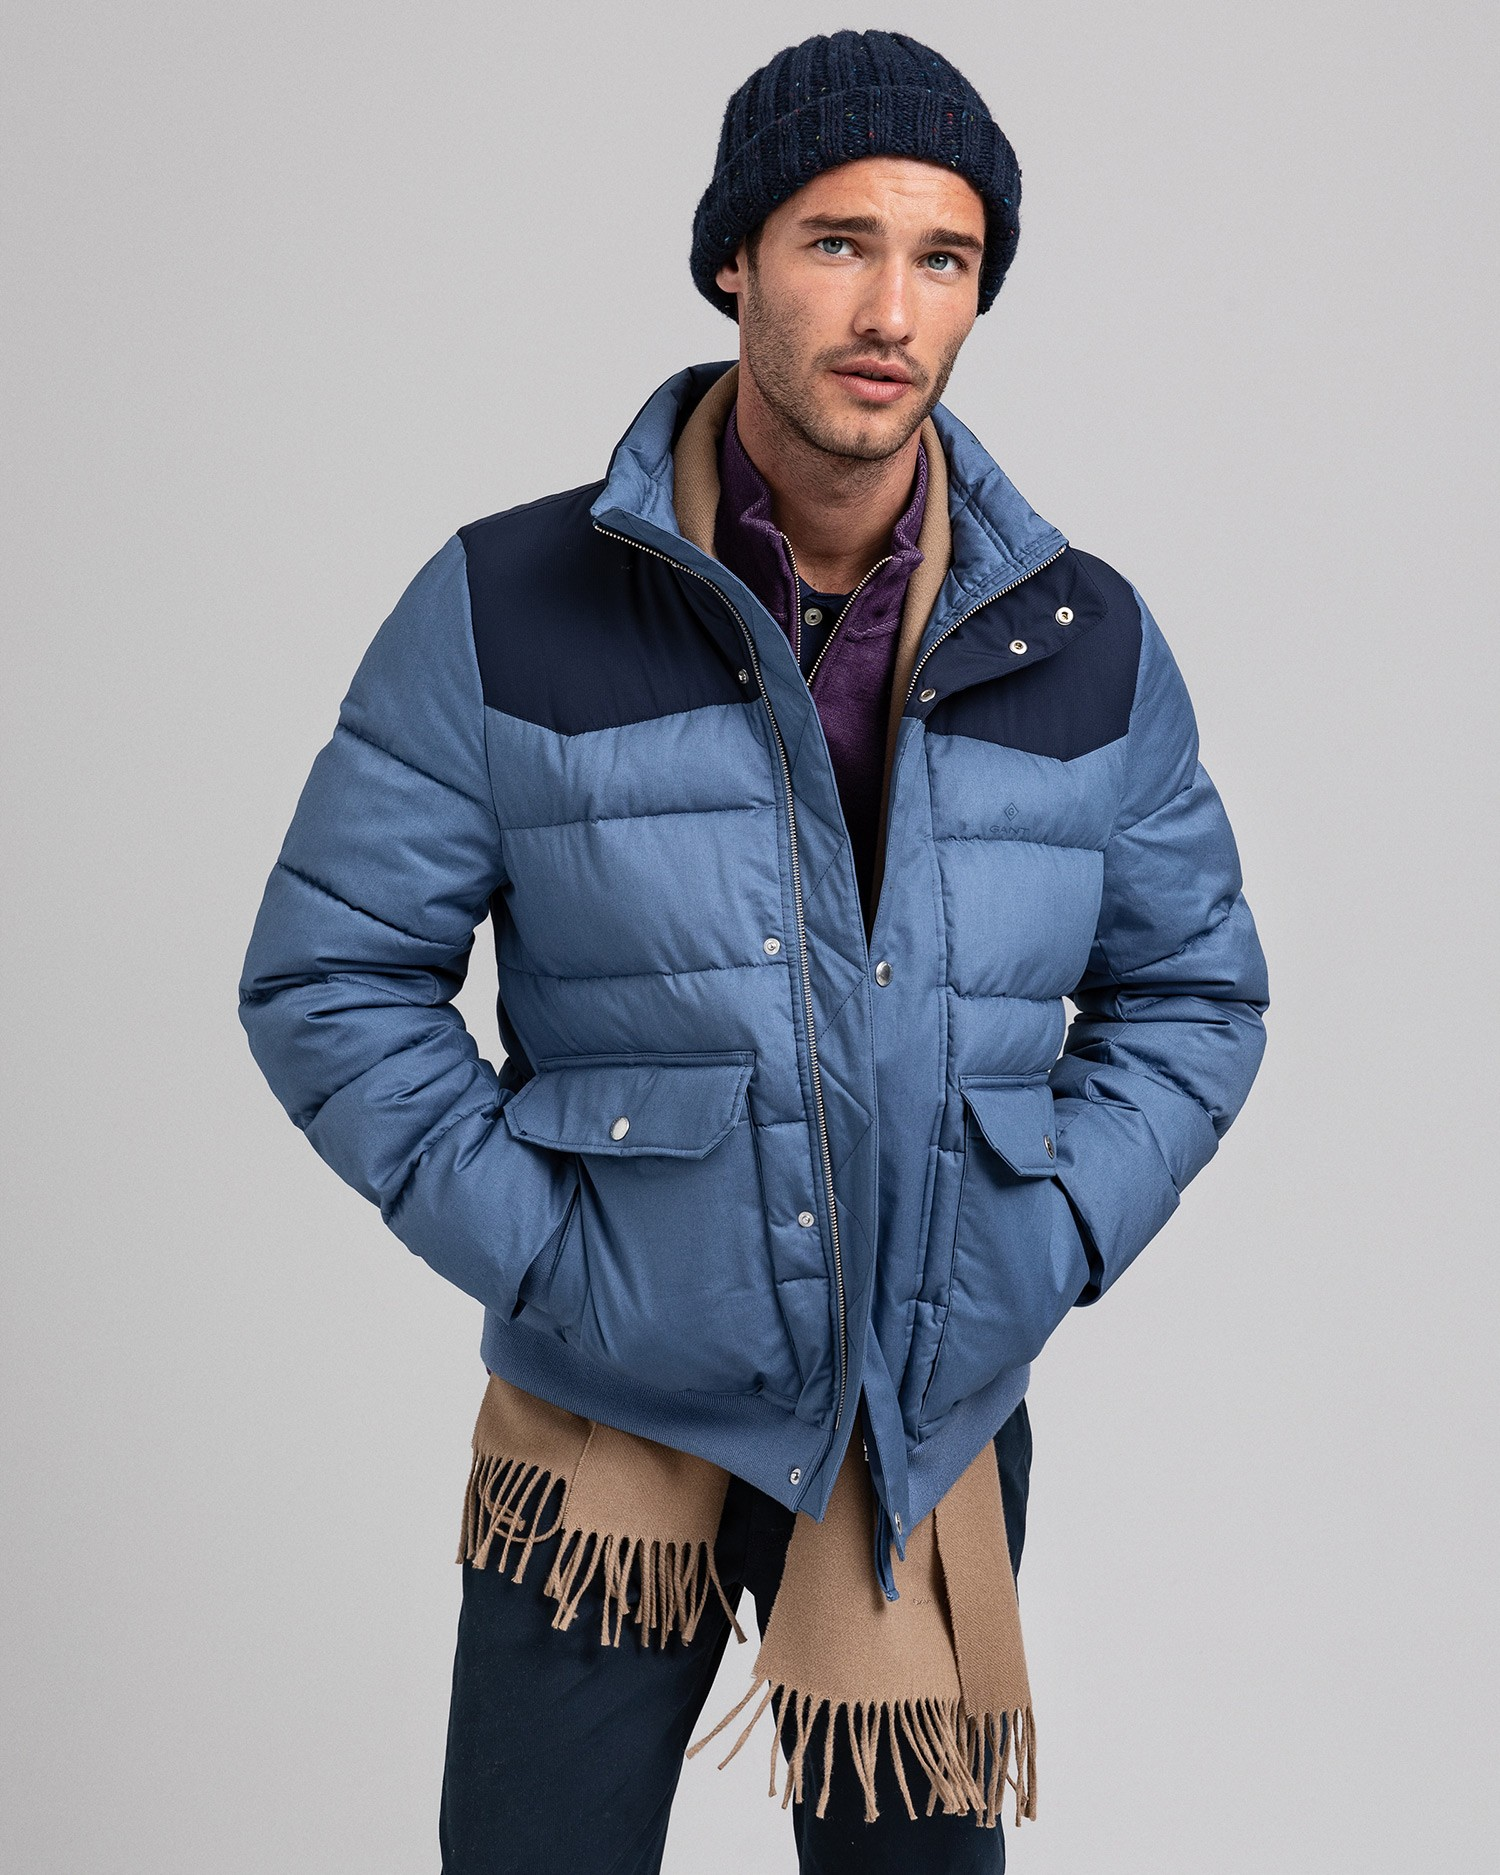 GANT Kurtka Męska The Retro Puffer - 7006101